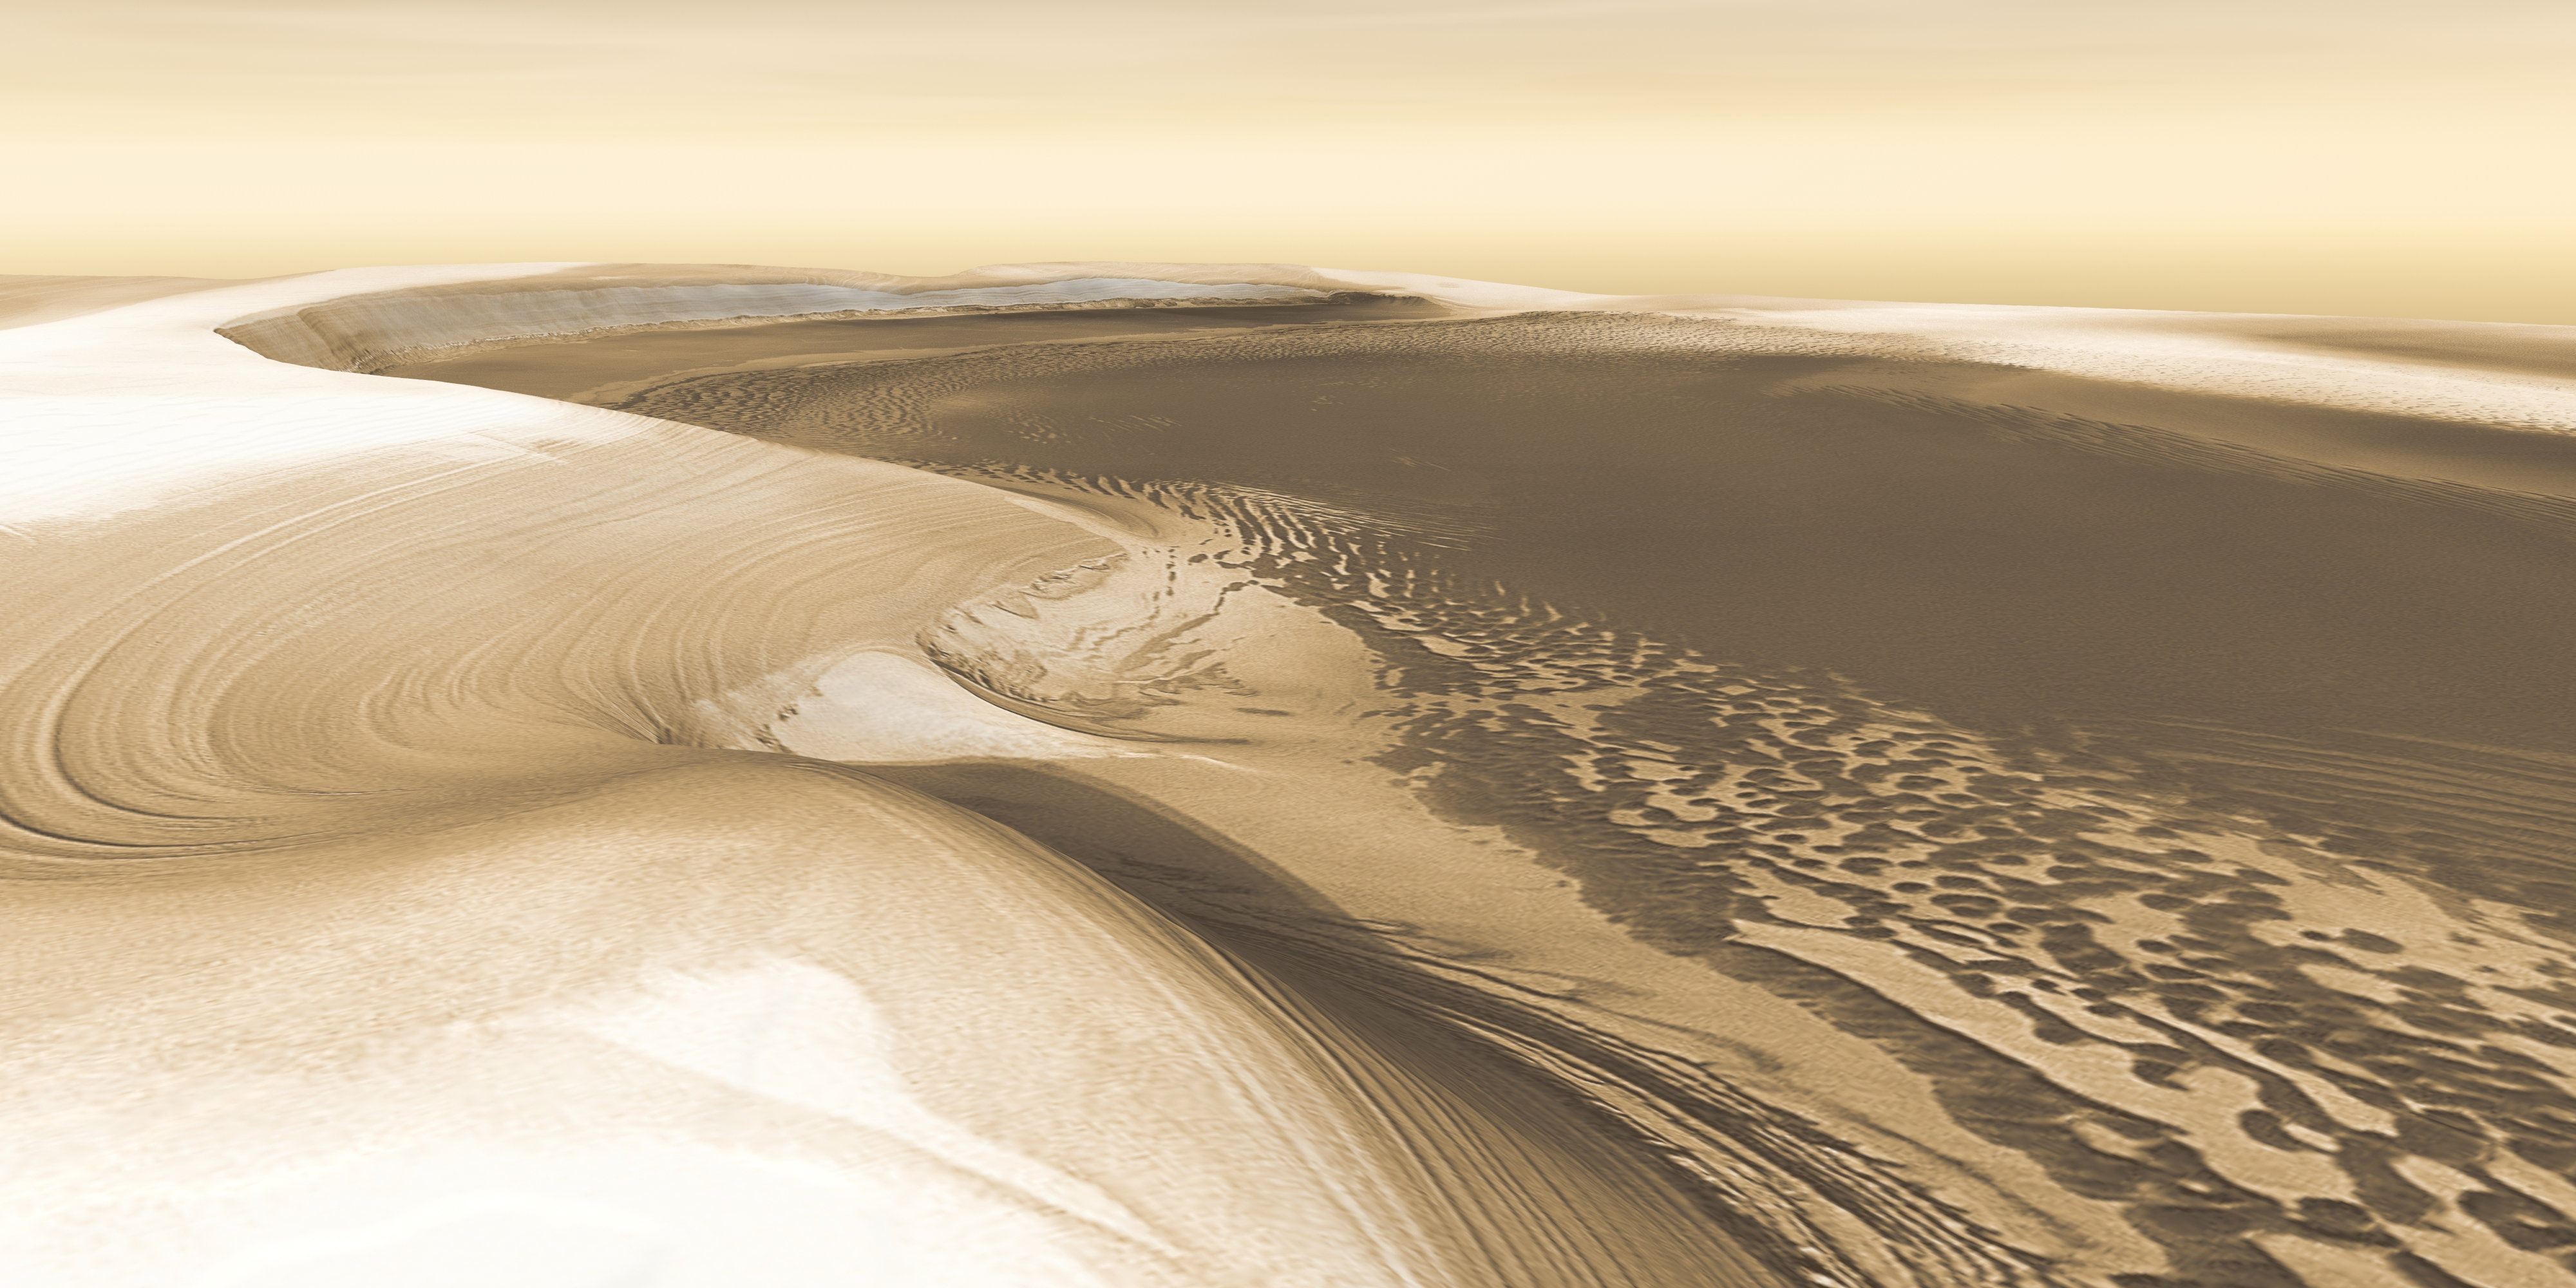 A 3D view of the north pole of Mars showing ice deposits.